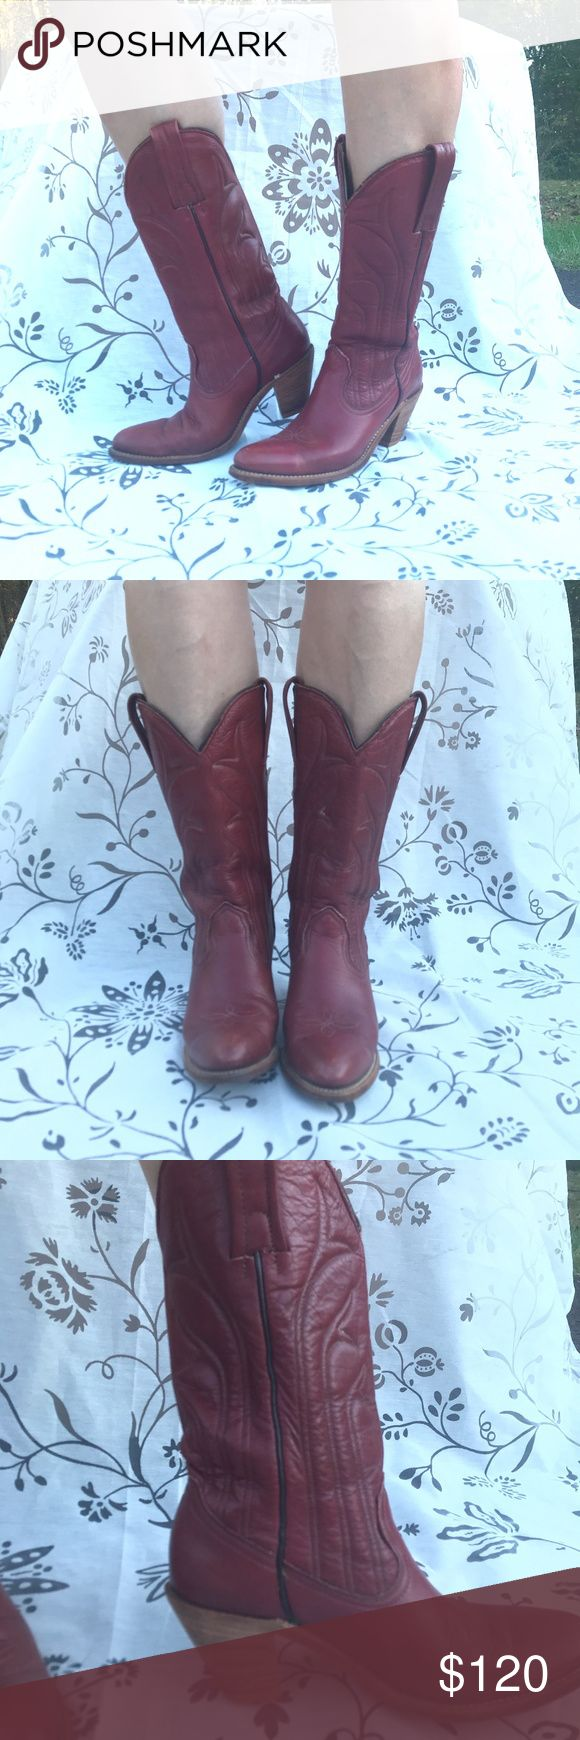 """Vintage Frye Cowboy Boots Red leather Vintage Frye boots in excellent vintage condition  I cannot find a size on these, but I am a true 8, and they just fit me, so I will say they are 7.5 to 8.  They are super comfy and have mostly wear on the bottoms, You will love these boots! 2.5"""" Heel.  These are a reddish Brown. Frye Shoes"""